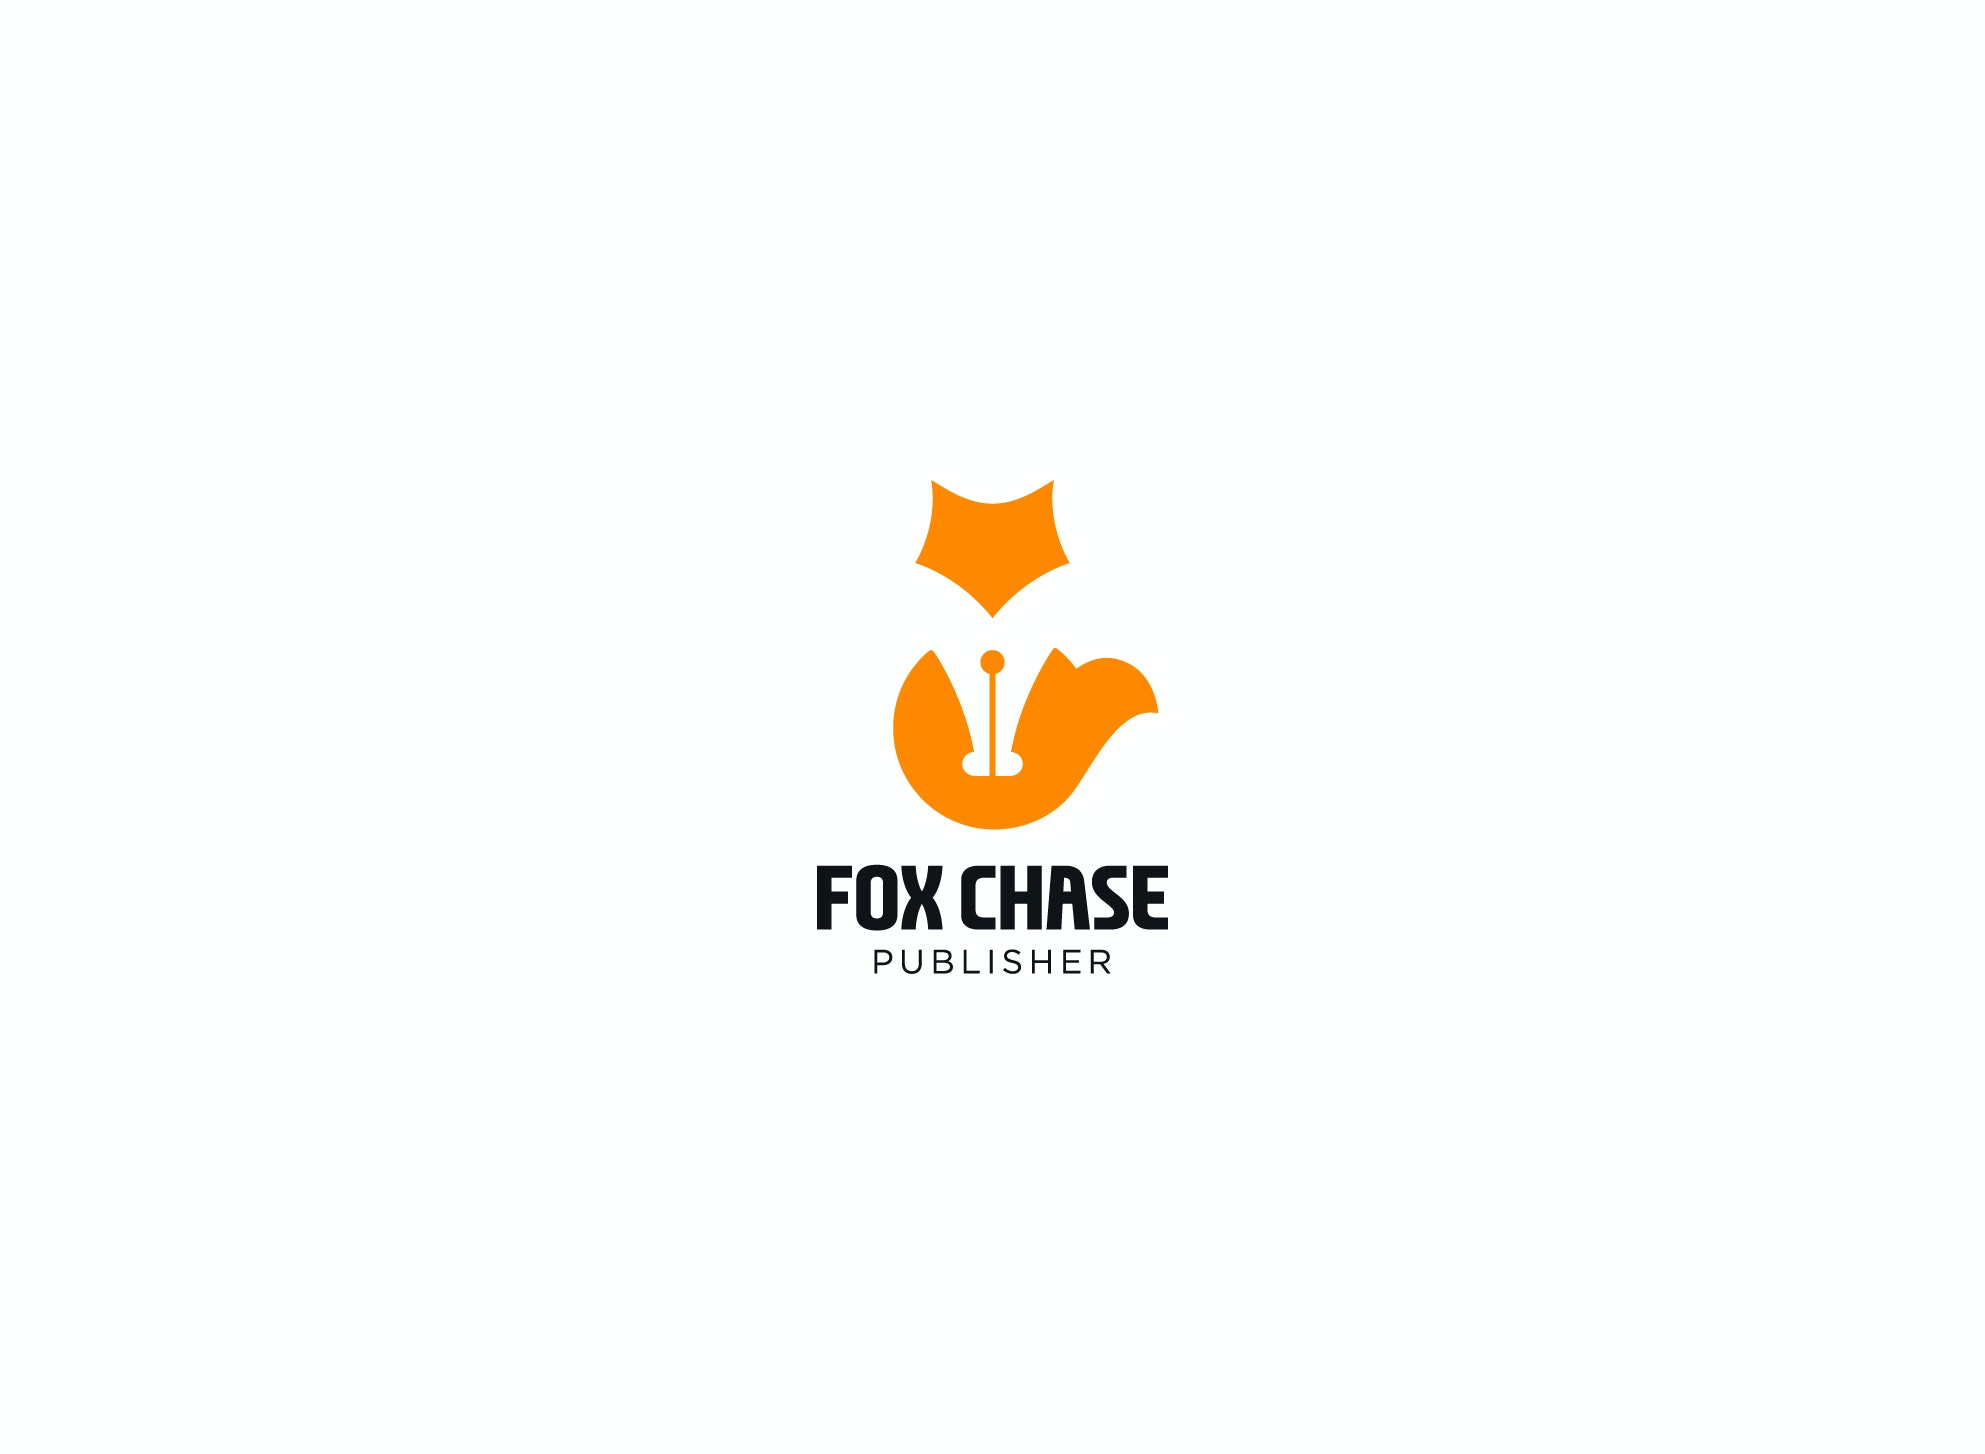 Fox Chase Publisher logo